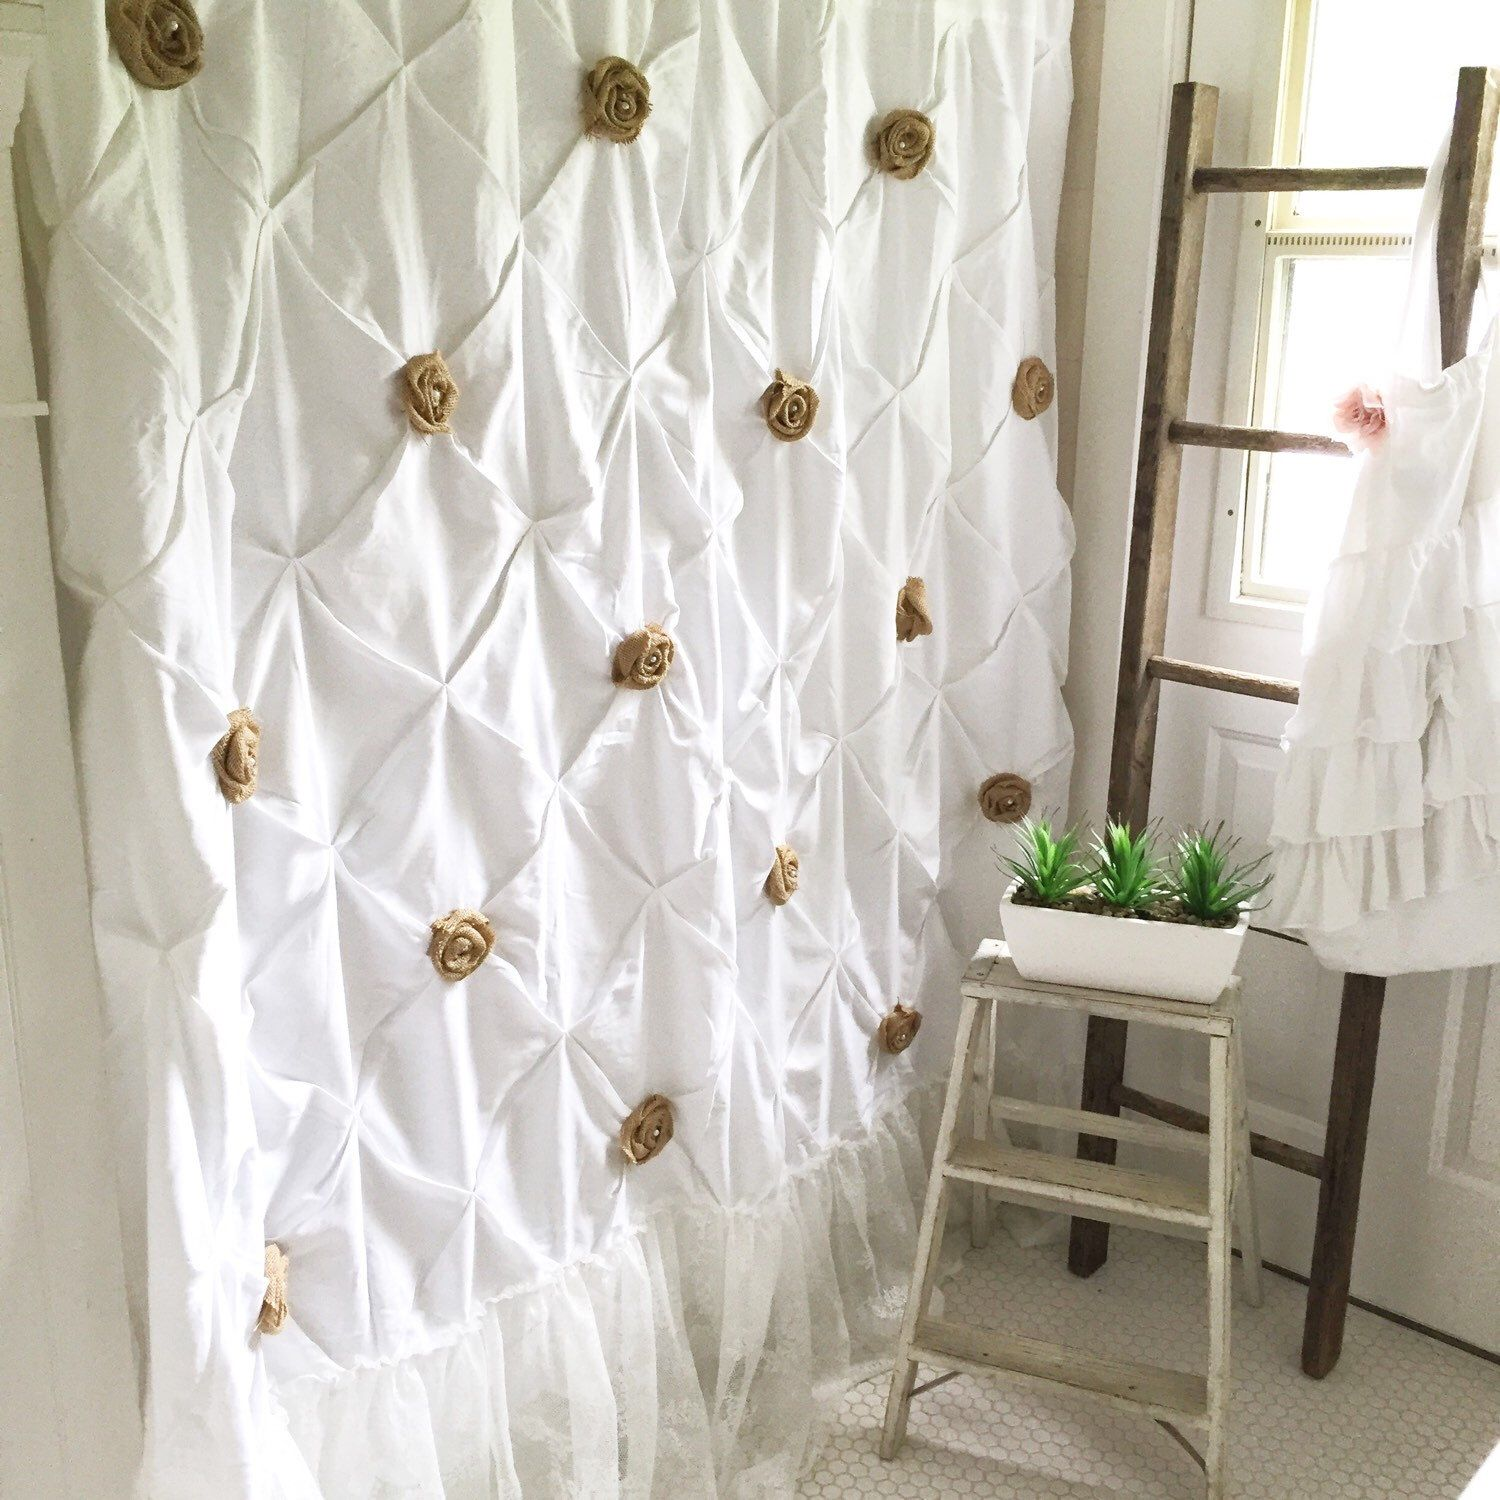 Burlap Ruffle Shower Curtain White Cotton With Handmade Rosettes And